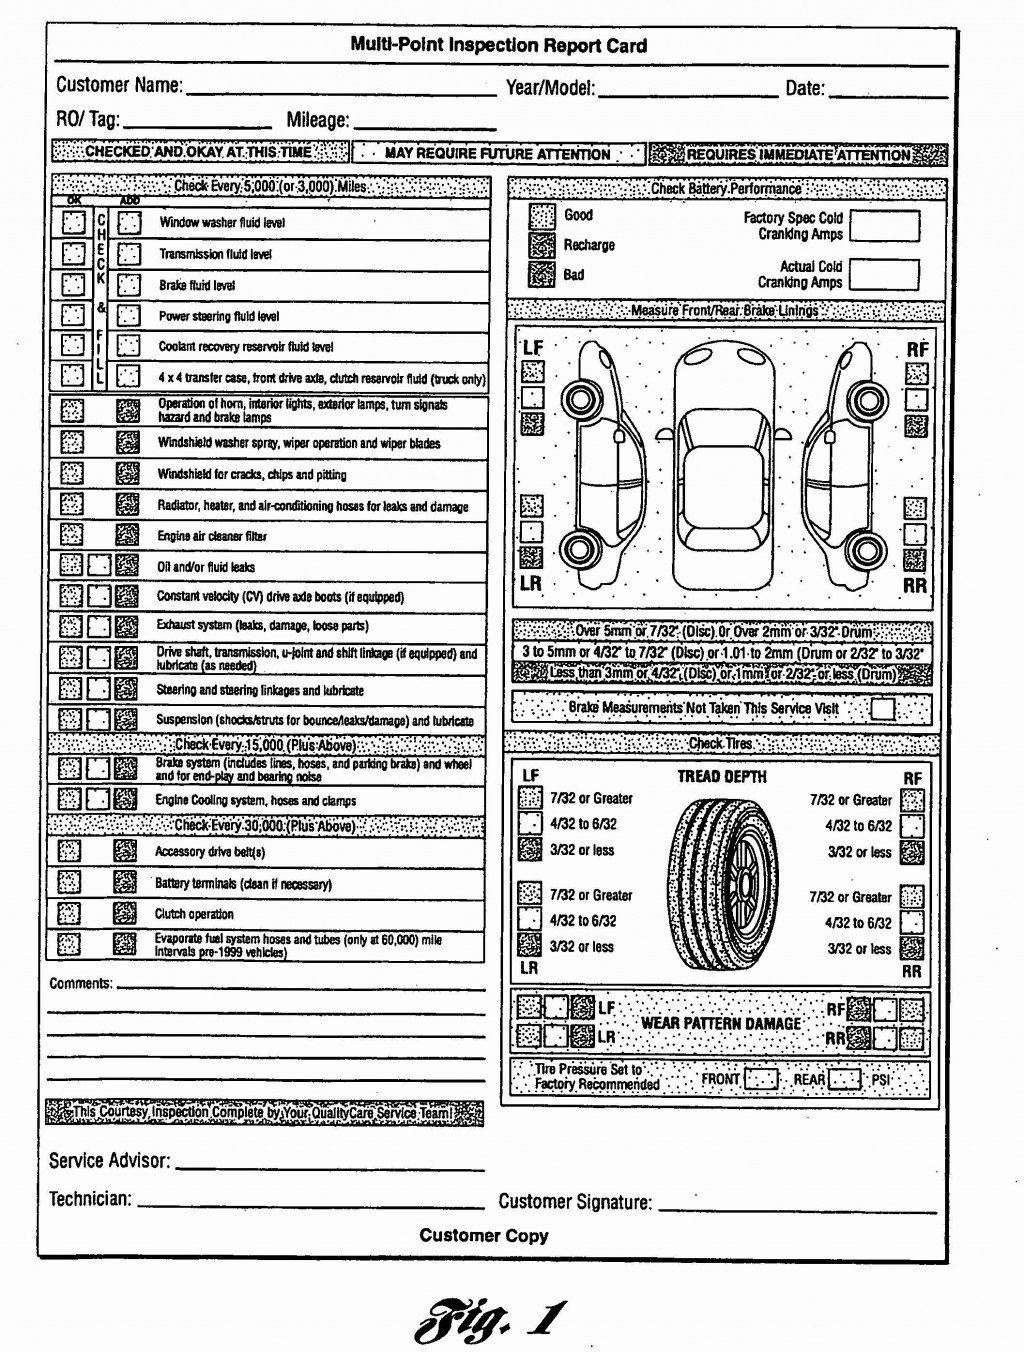 004 Unusual Truck Inspection Form Template High Definition  Commercial Vehicle Maintenance FreeLarge